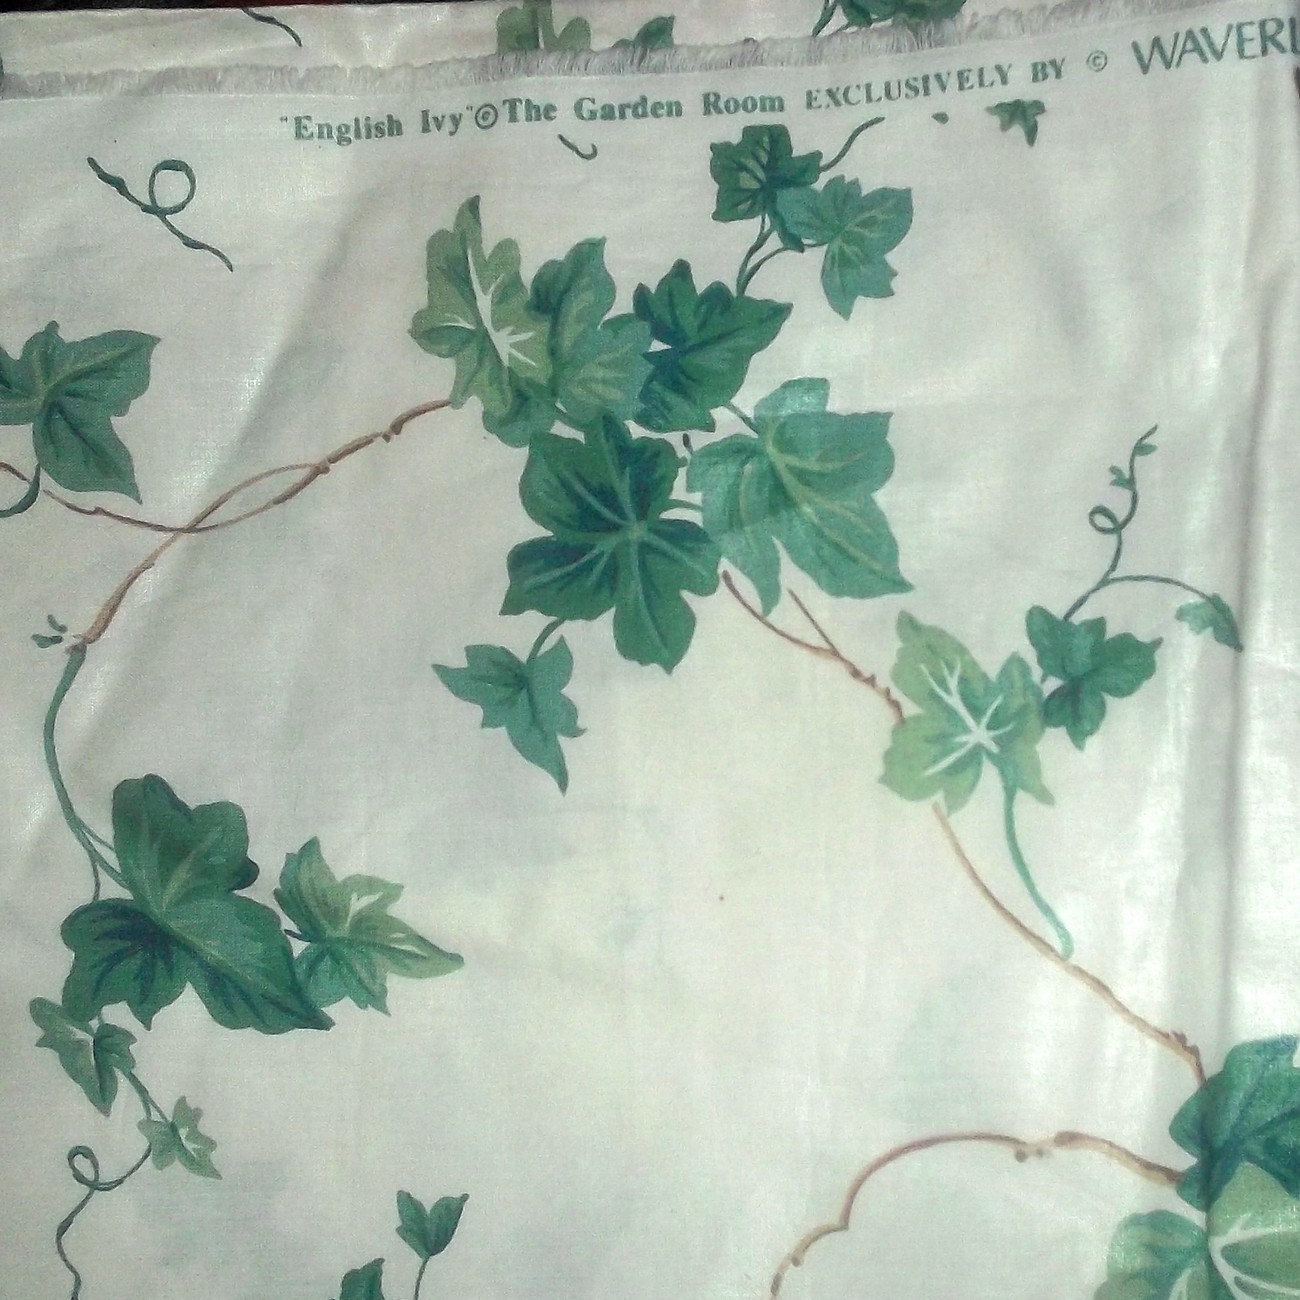 Vintage waverly english ivy garden screen and 24 similar items for Garden screening fabric